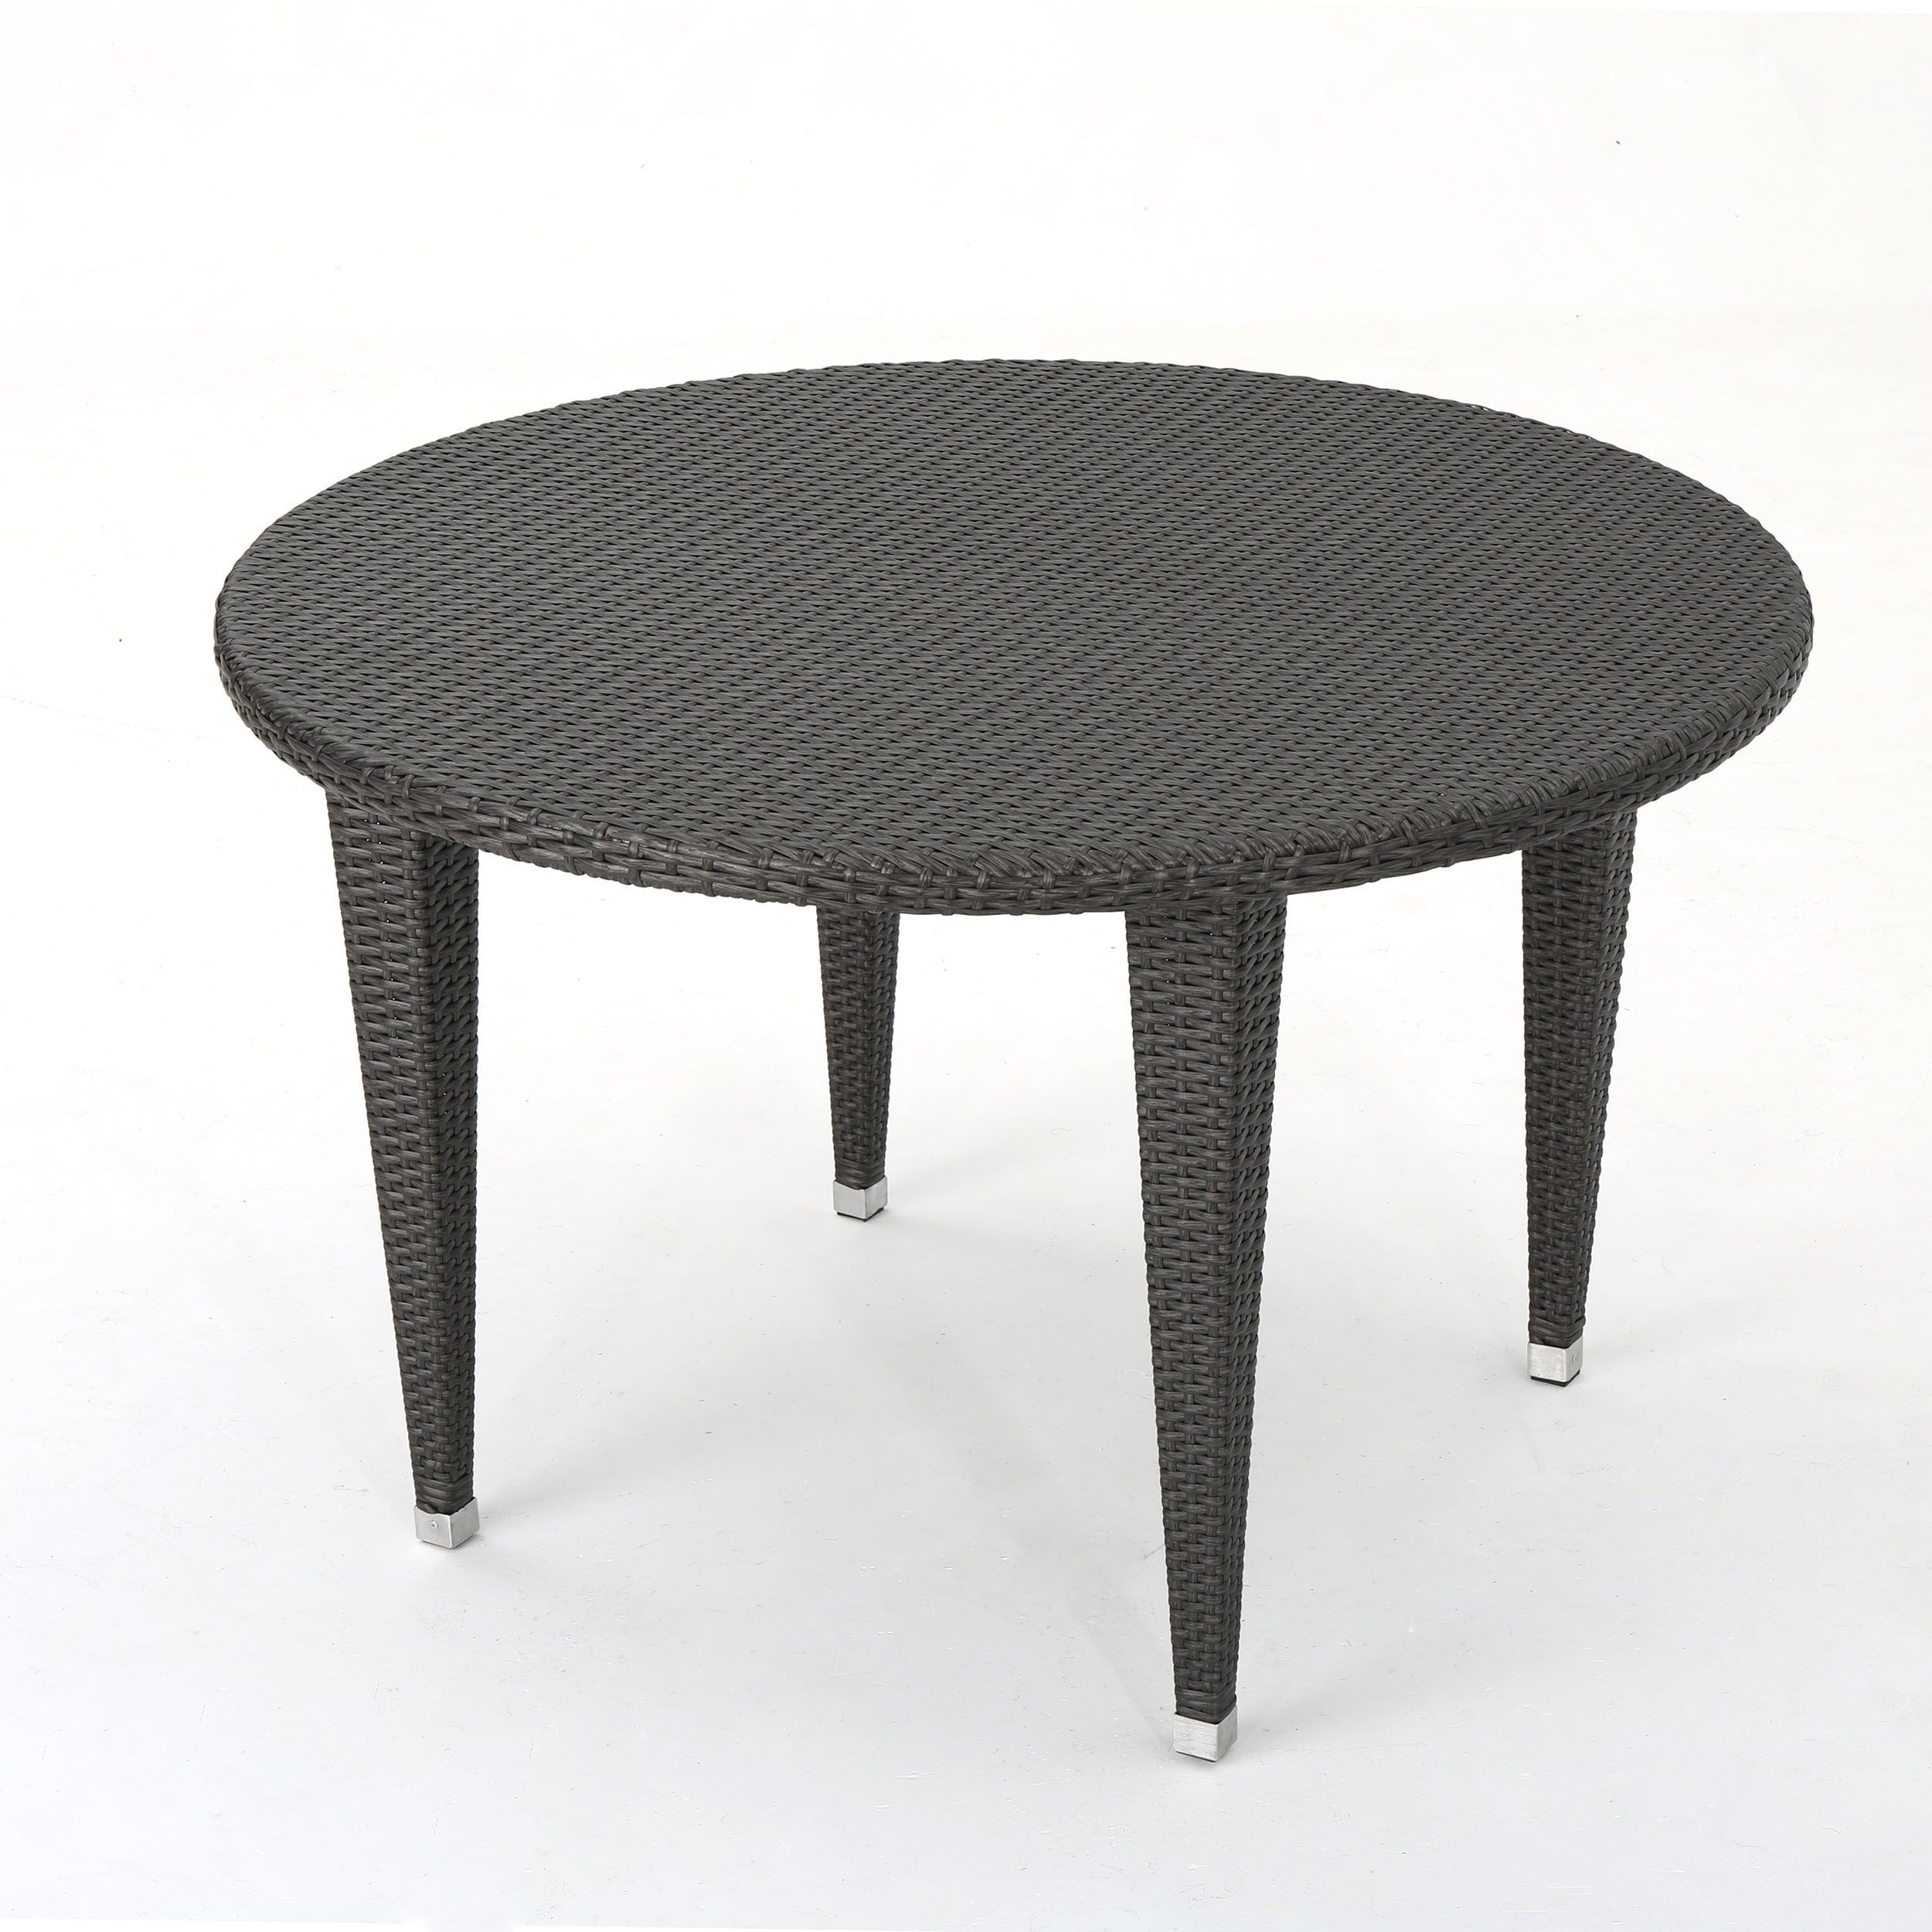 Dominica Outdoor Wicker Round Dining Table By Christopher Knight Home Multi Brown Patio Furniture Metal